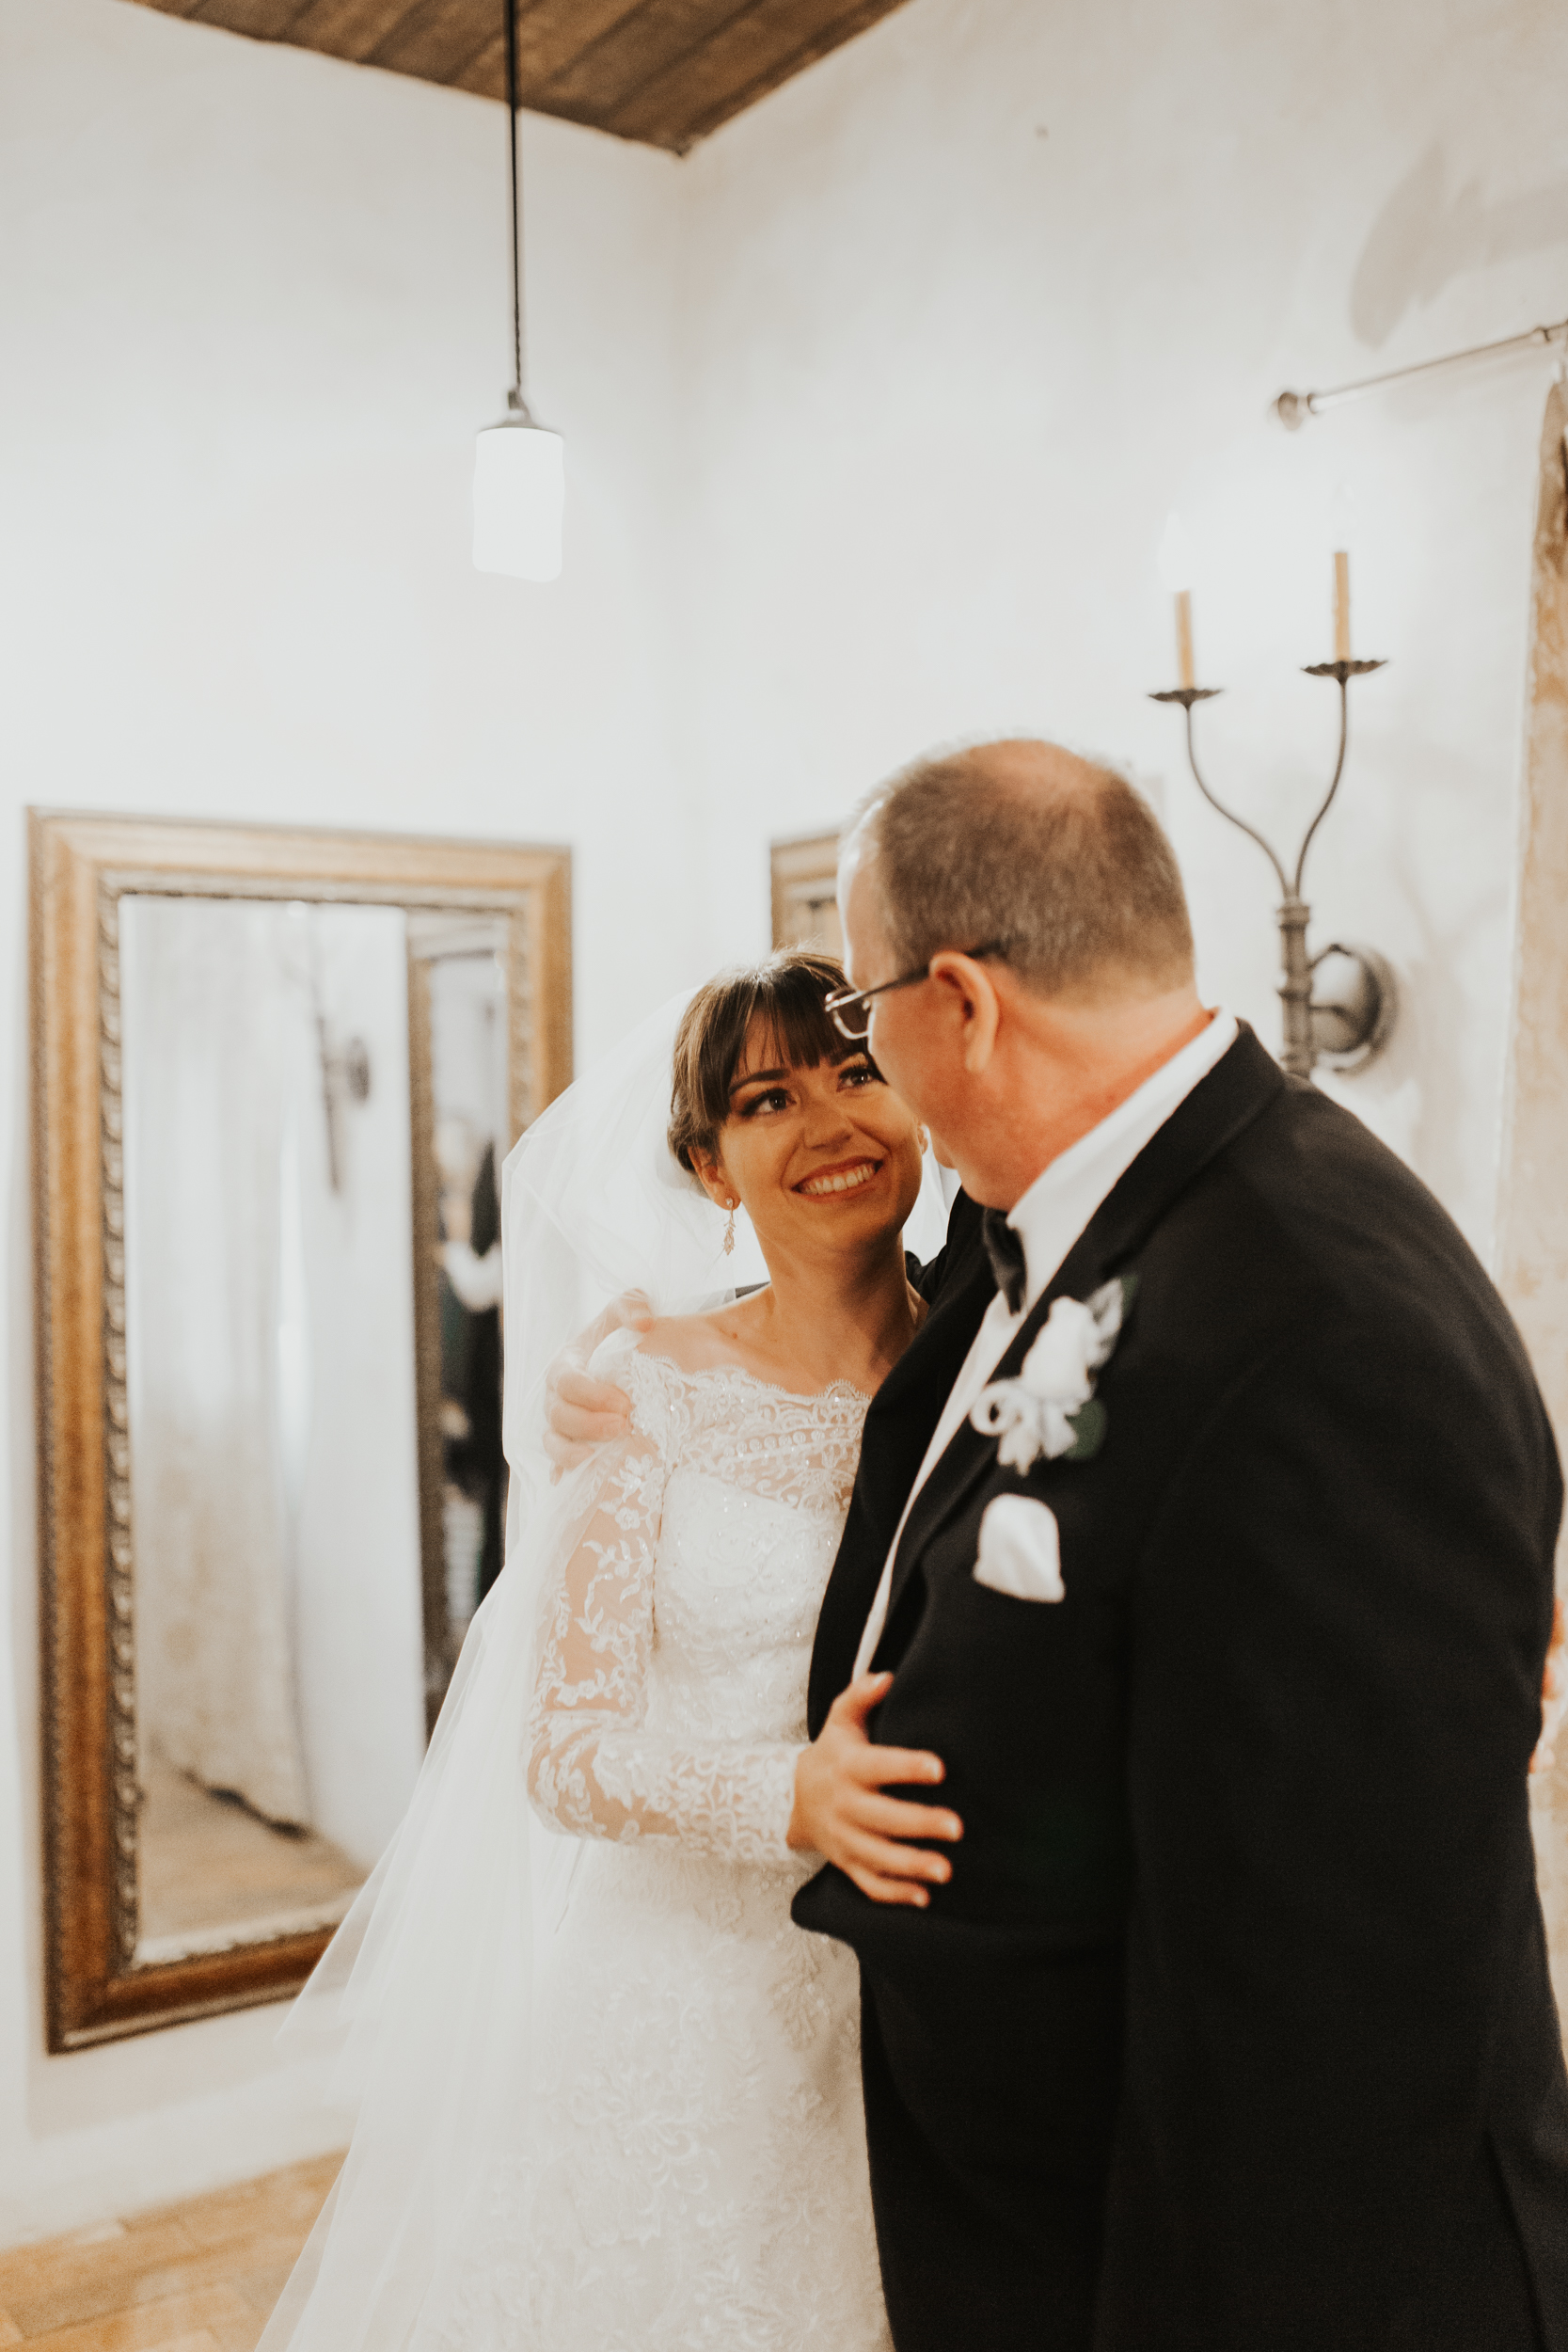 Megan_Caleb_Wedding_2018-68.jpg